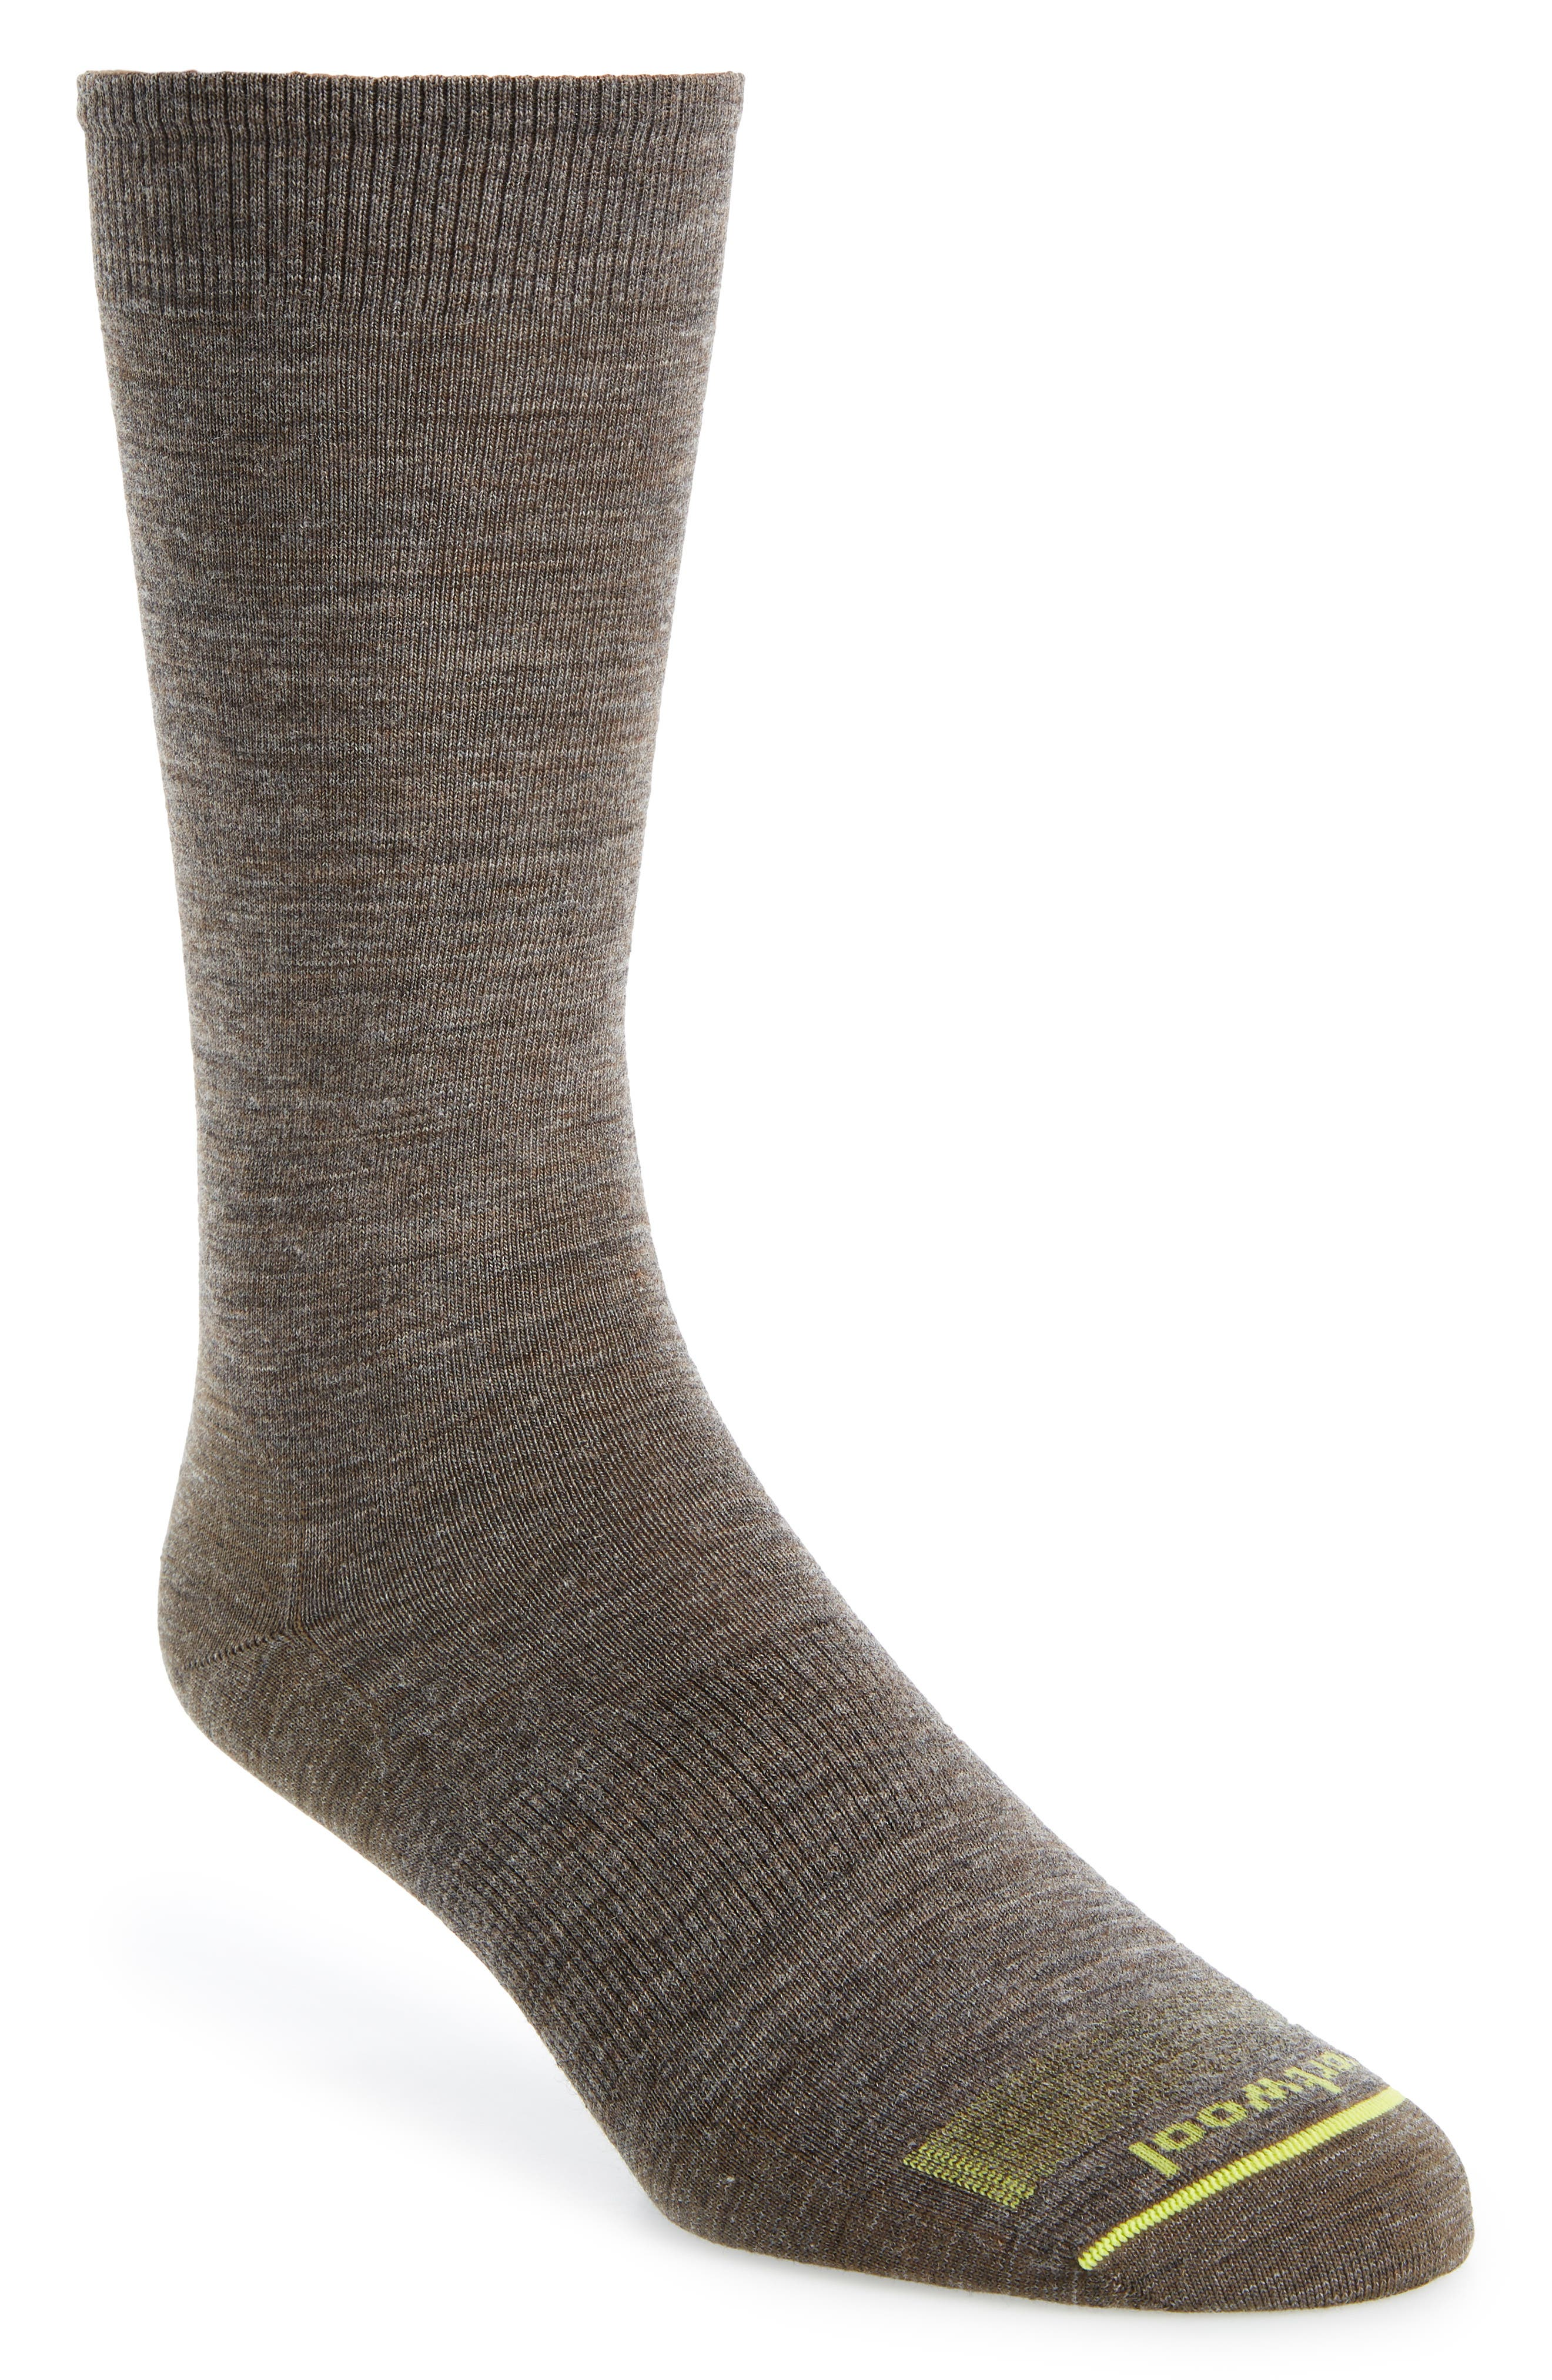 Anchor Line Merino Wool Blend Socks,                             Main thumbnail 1, color,                             TAUPE